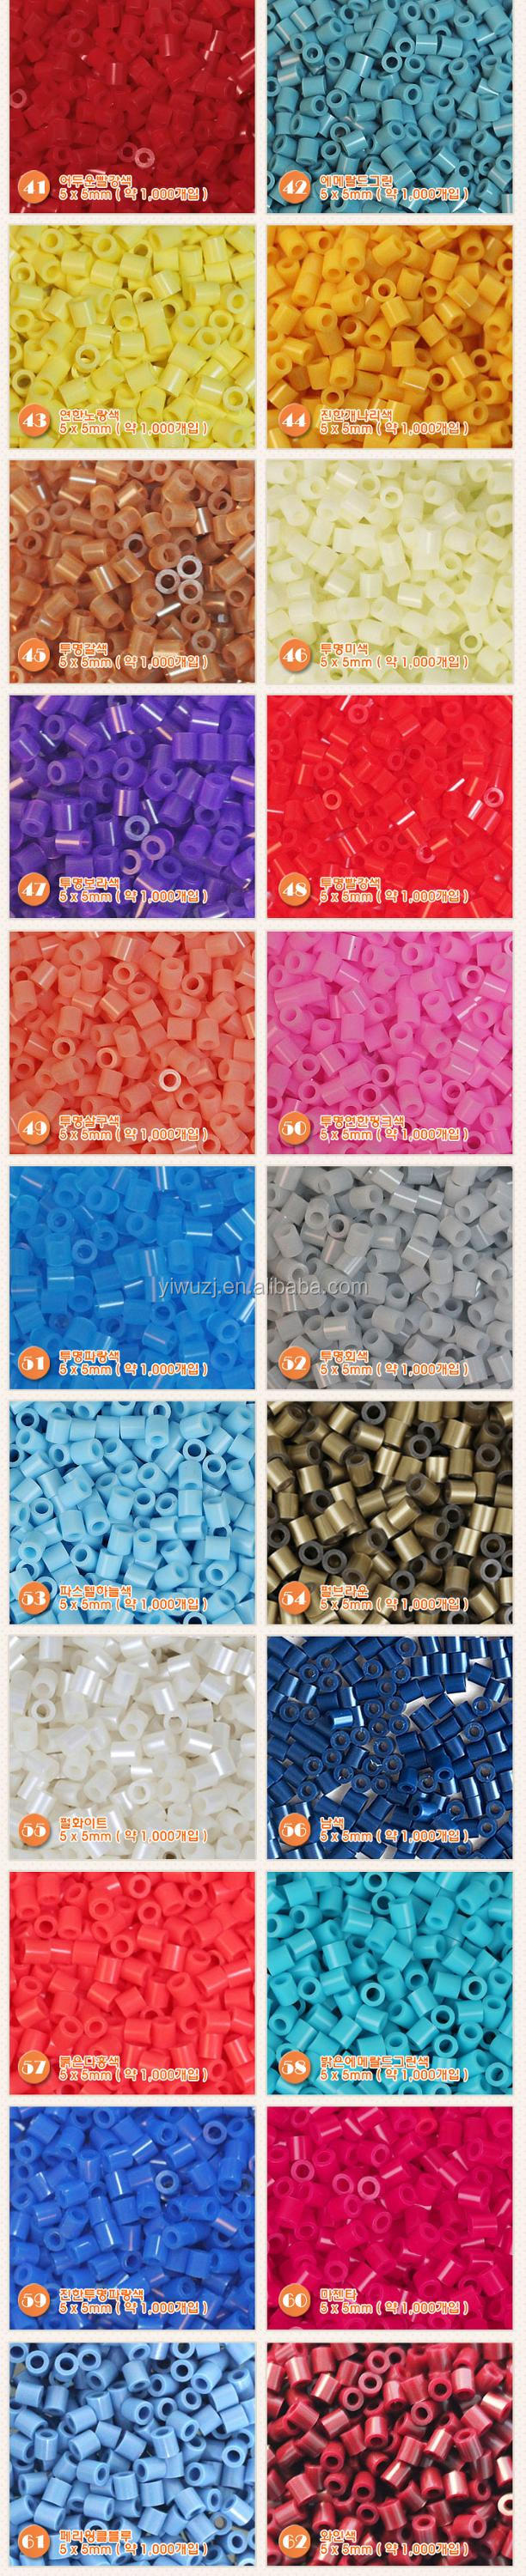 Diy Fashion 5mm Fuse Beads PE Iron Beads Hama Perler Beads Kid Toy